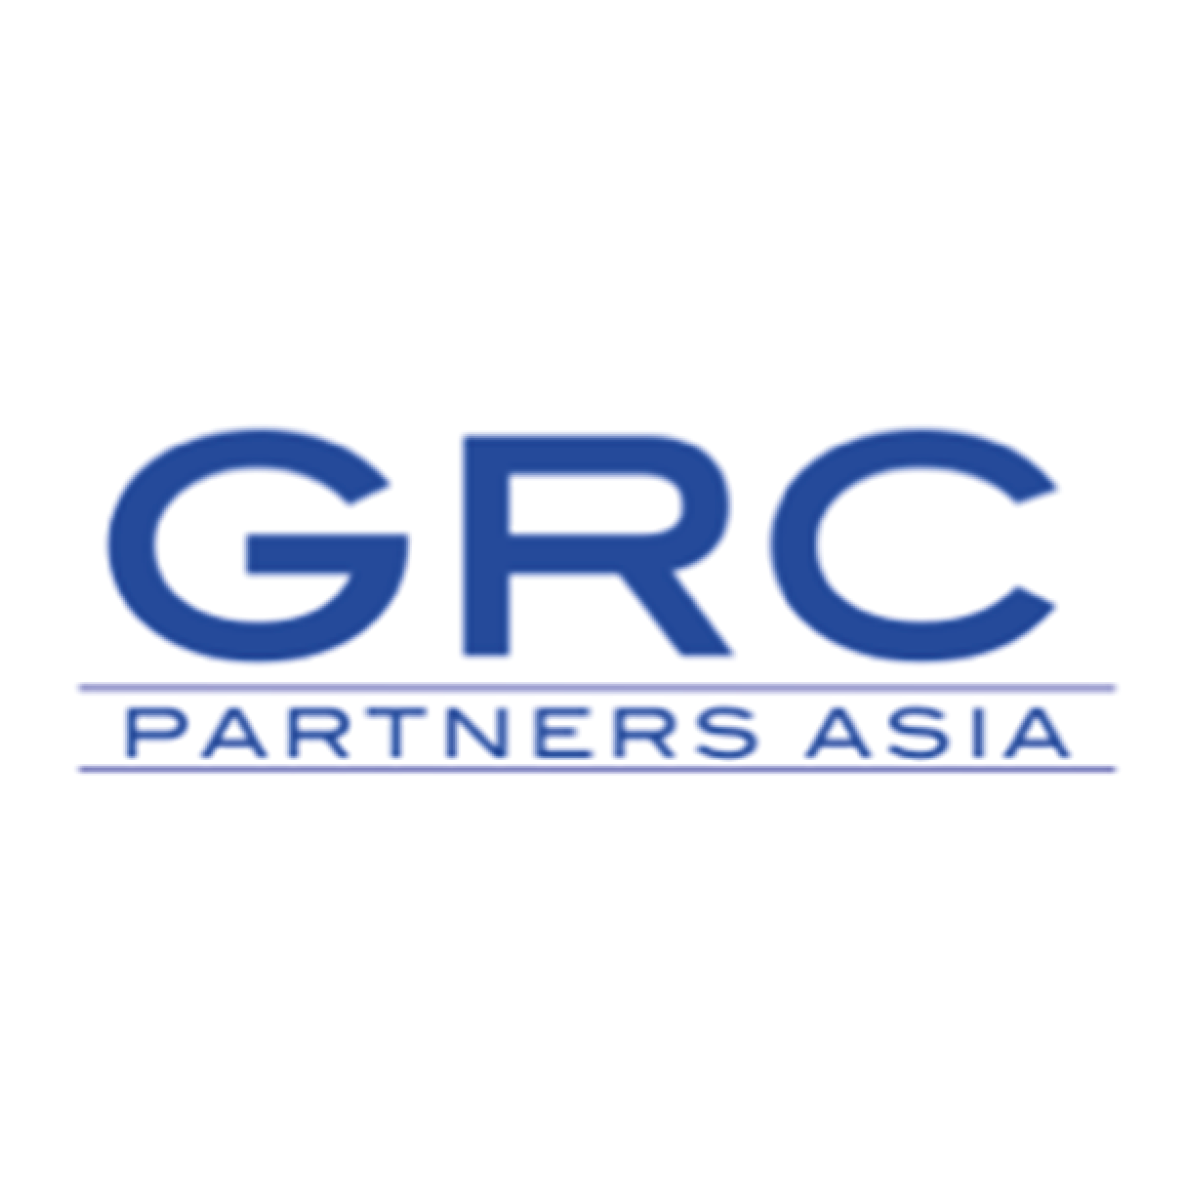 GRC partnership in Asia